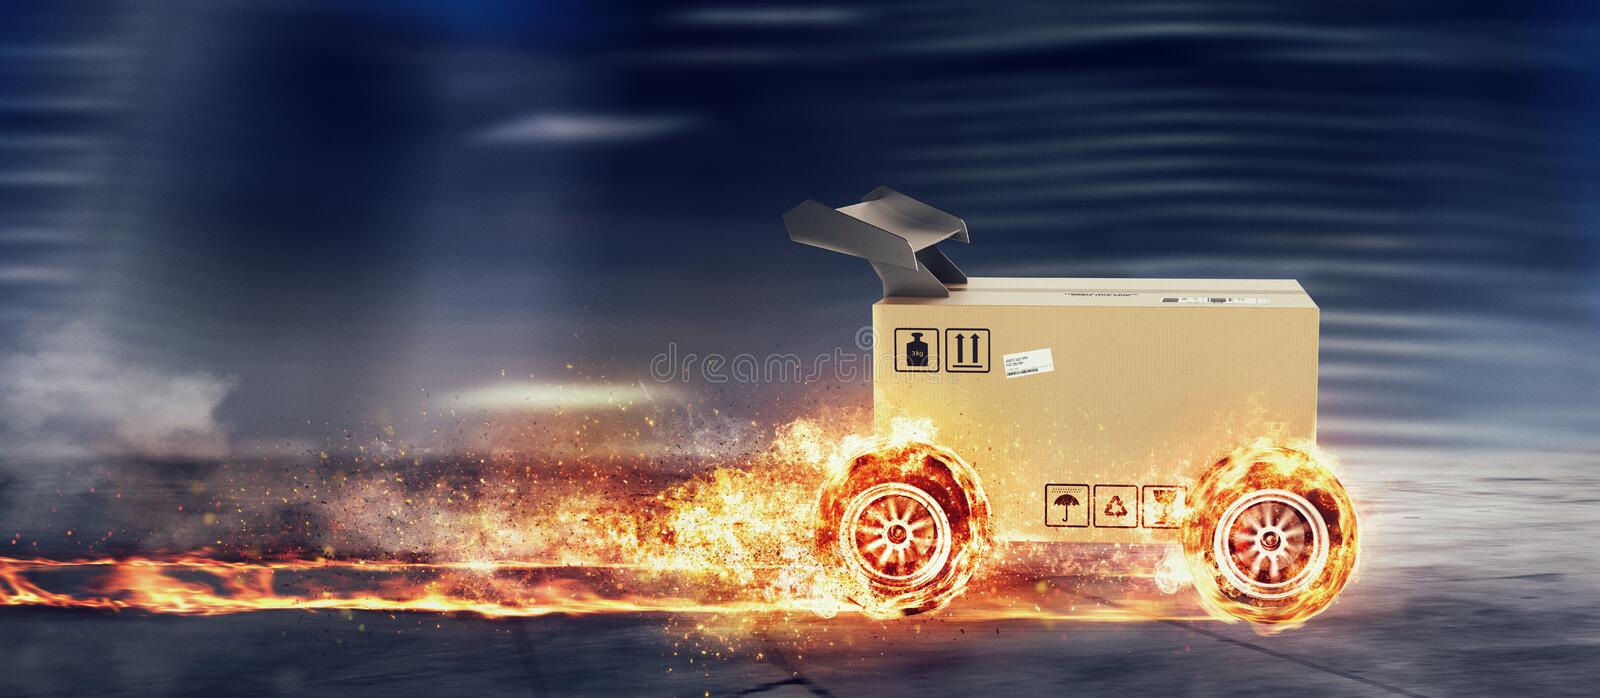 Priority Cardboard box with racing wheels on fire. Fast shipping by road. royalty free stock photo